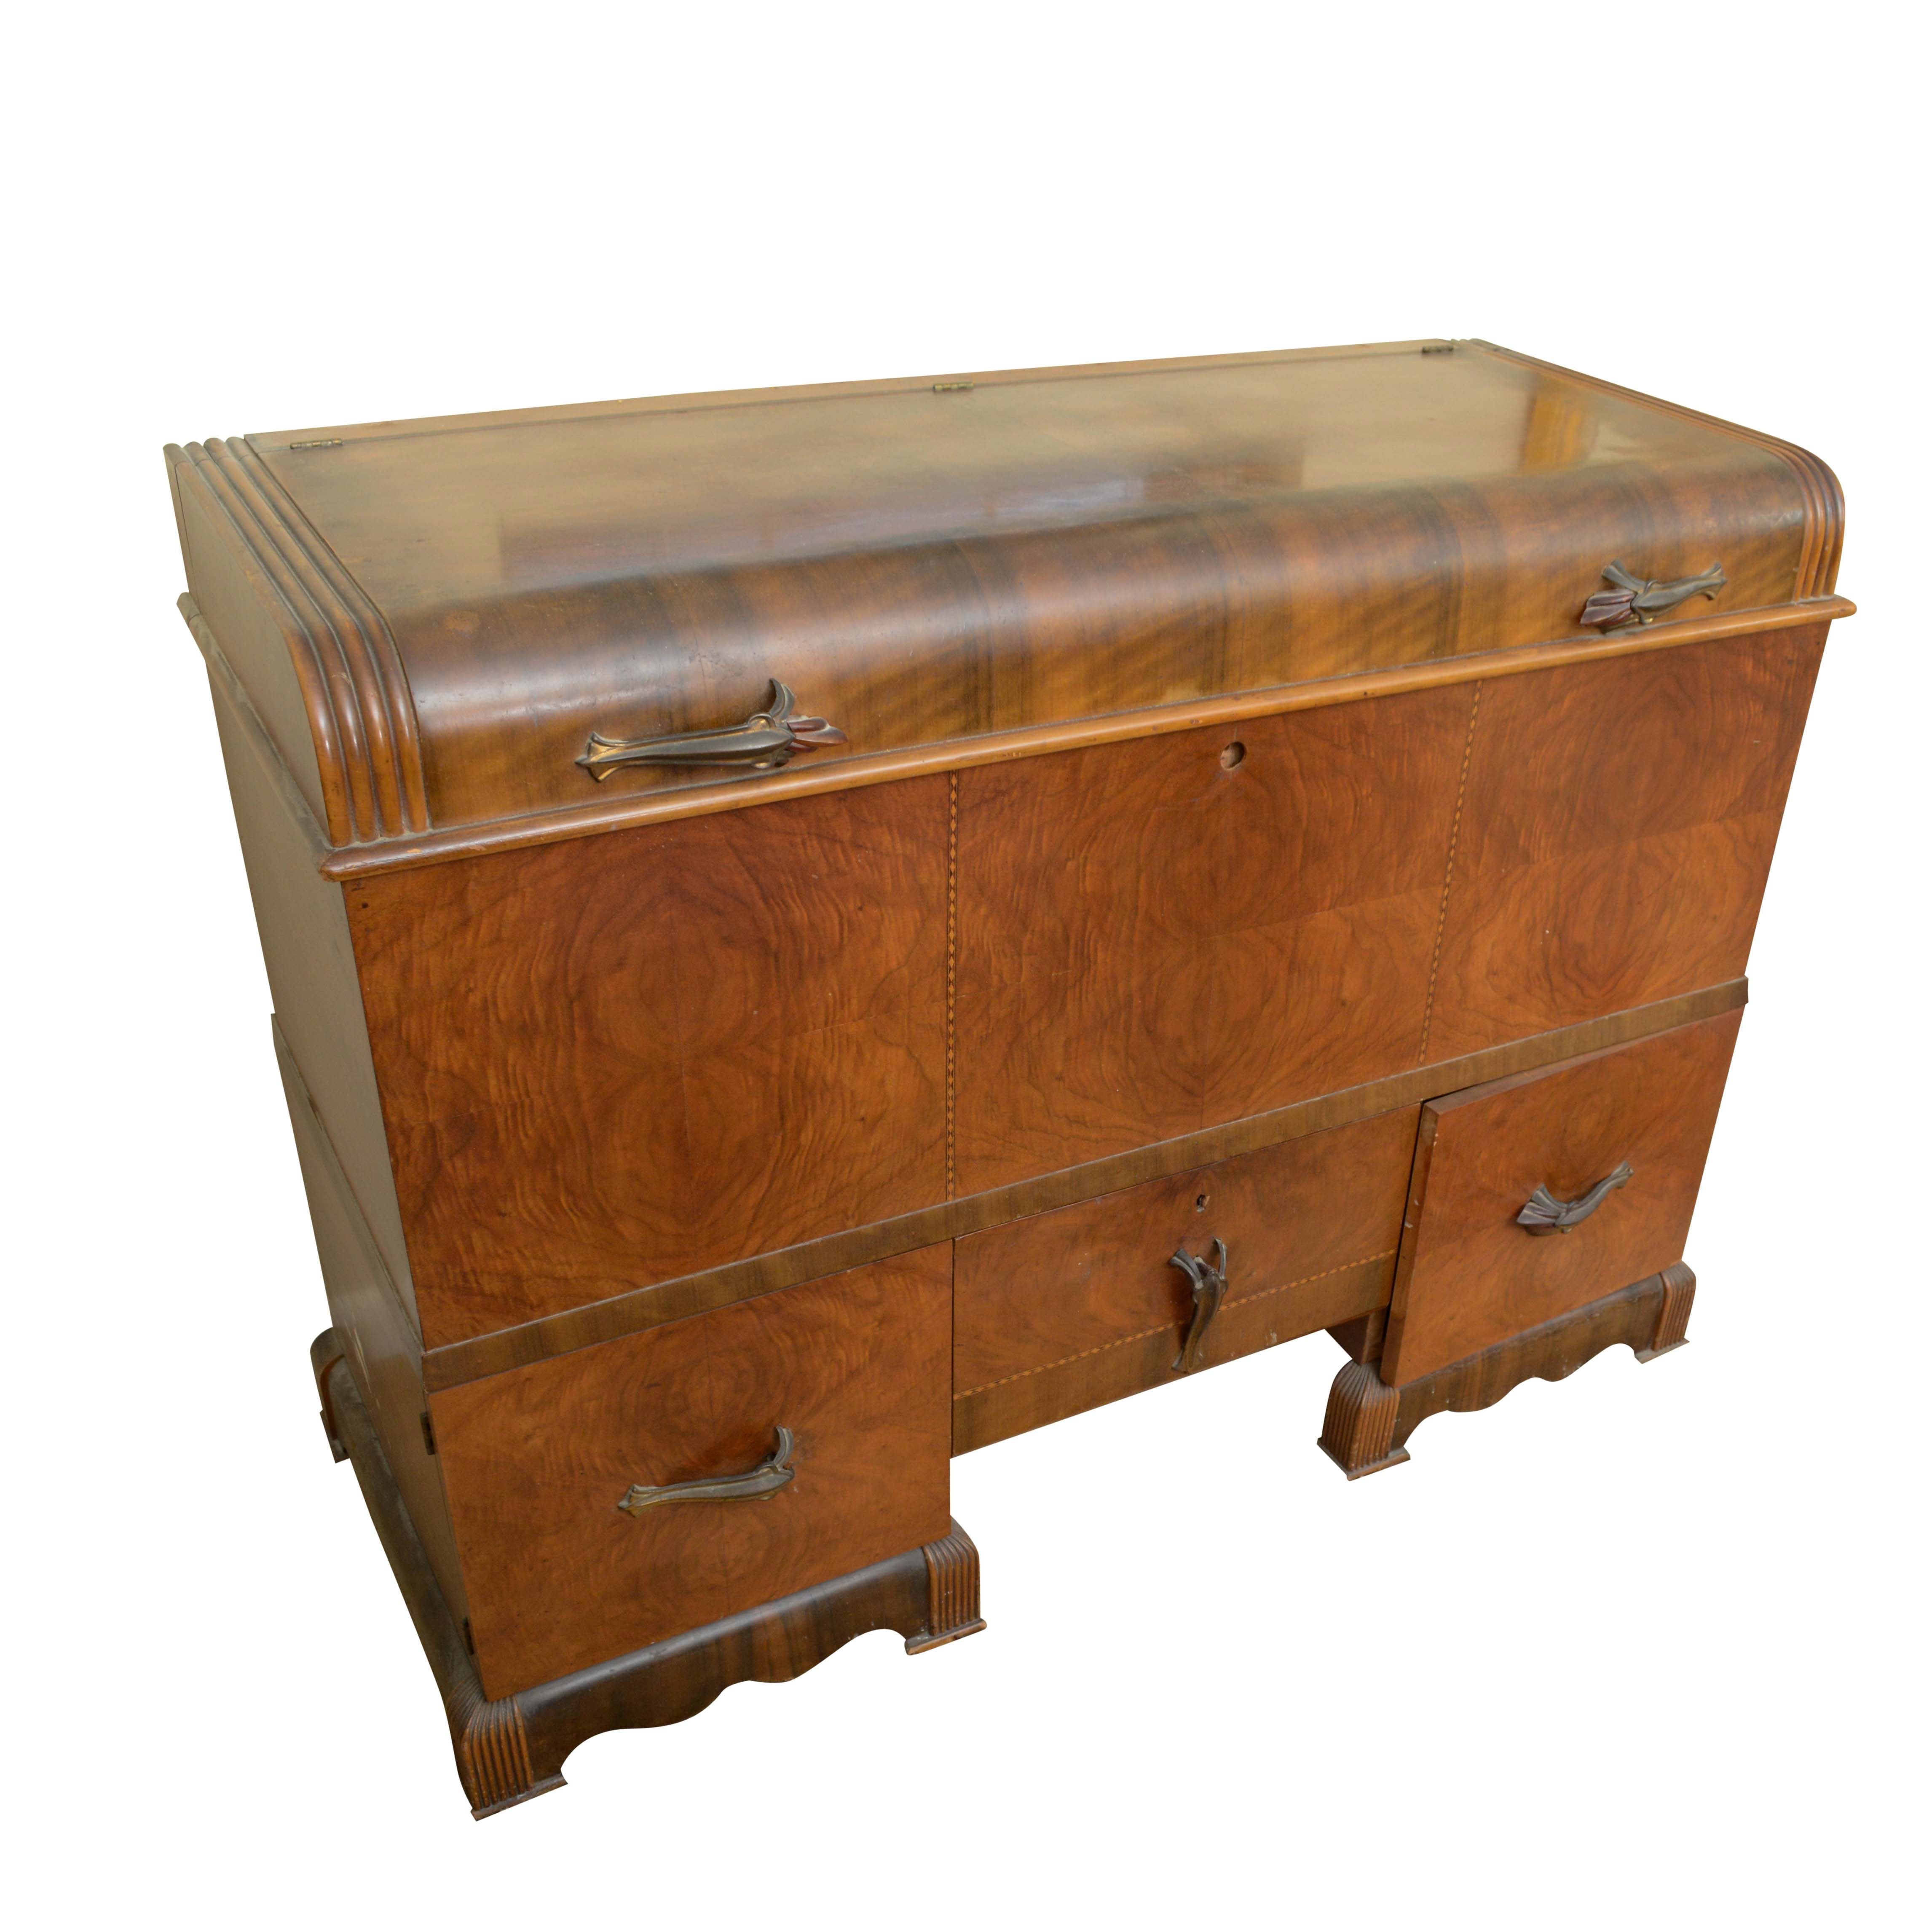 Vintage Art Deco Style Cedar Chest by West Branch Novelty Company